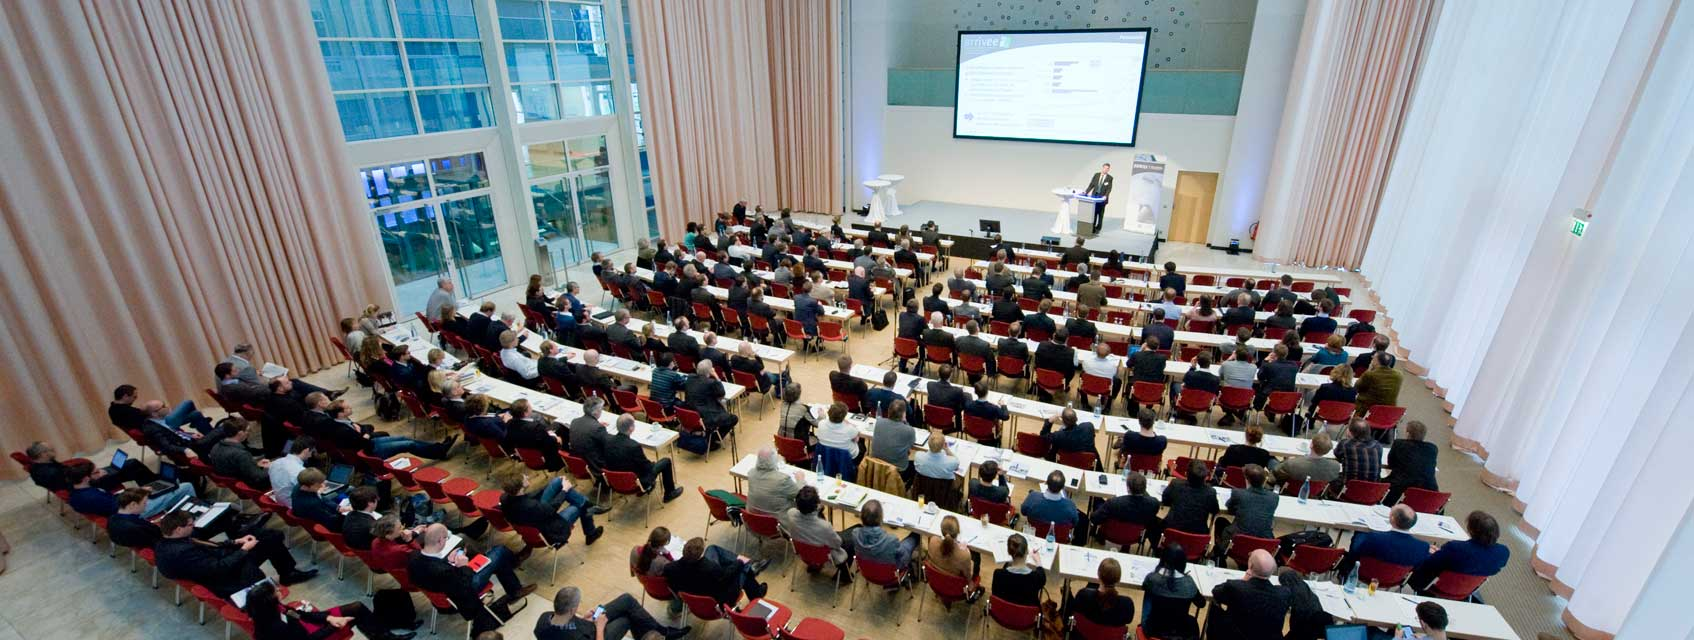 ERWAS status conference 2016